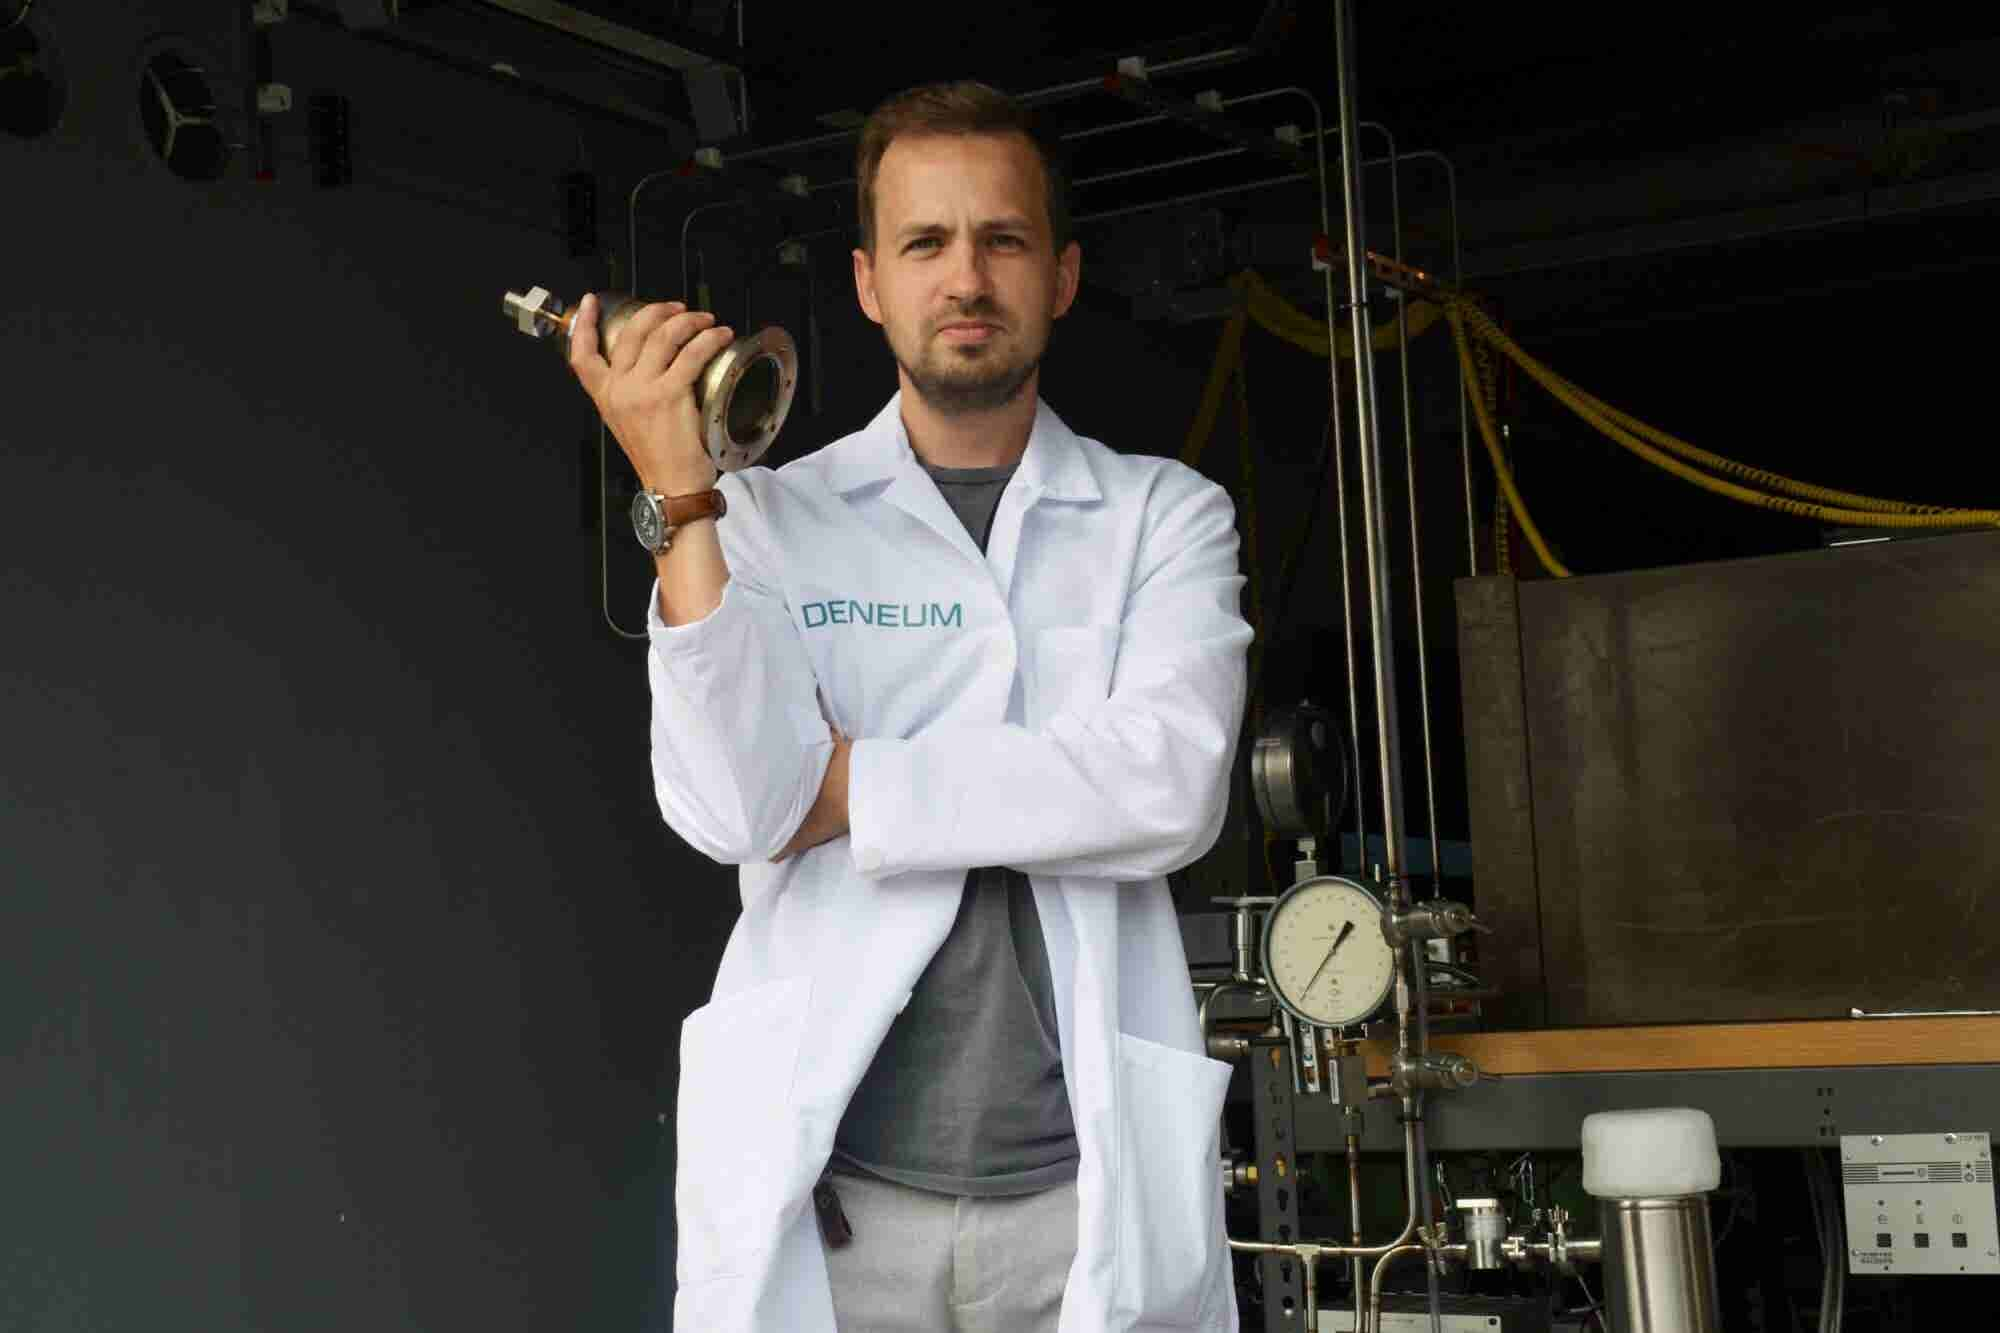 This Tesla-inspired Forbes 30 Under 30 Entrepreneur Claims to Have Discovered Particle Physics Holy Grail - Cold Fusion